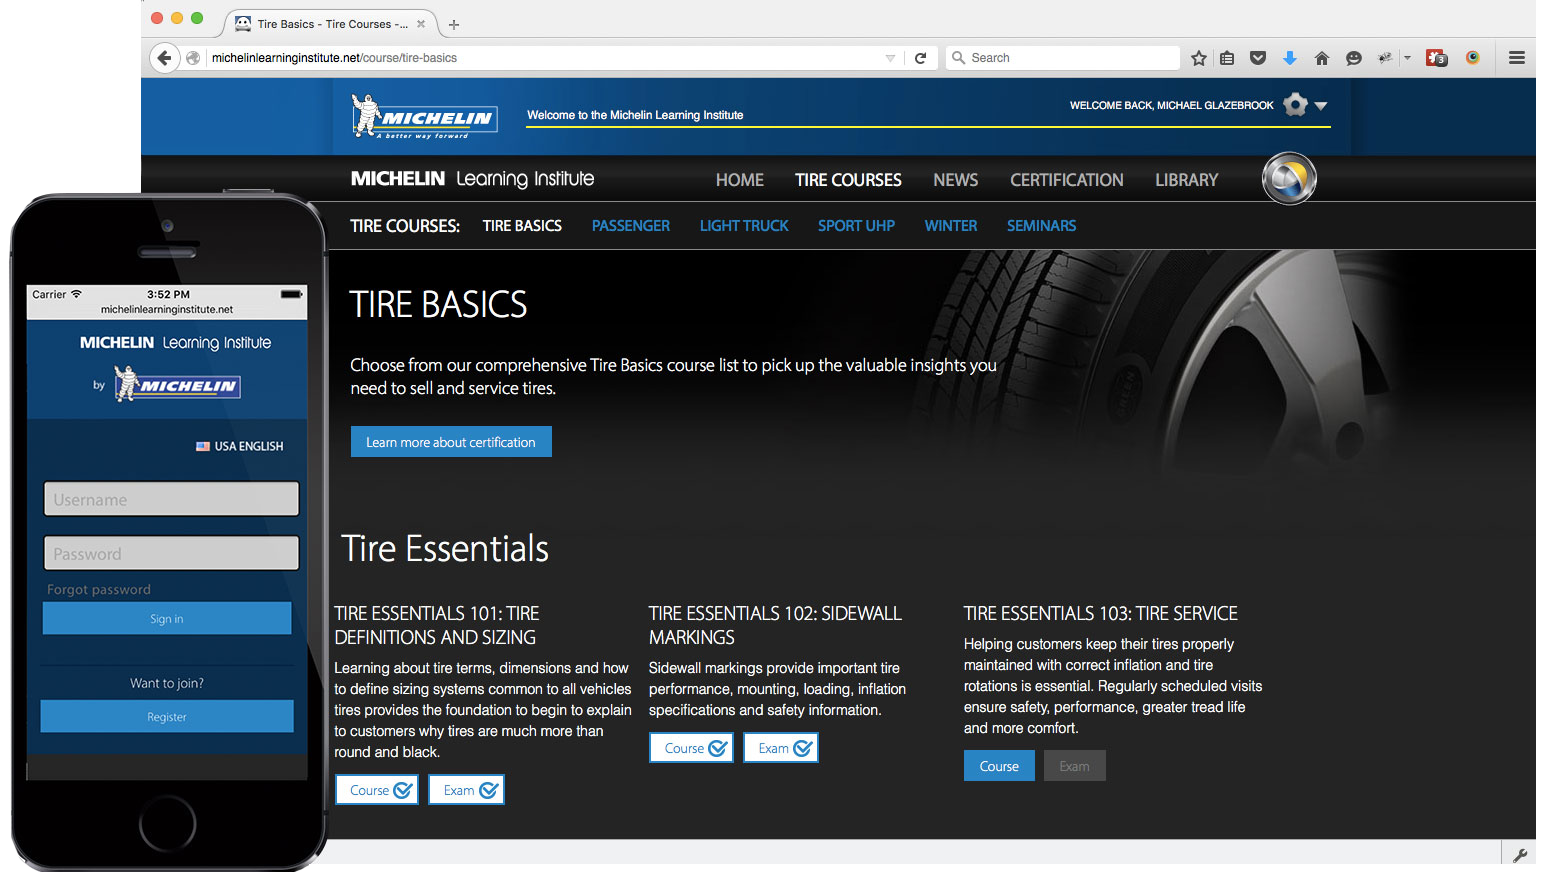 Michelin Learning Institute website in Mike Glazebrook's web developer portfolio